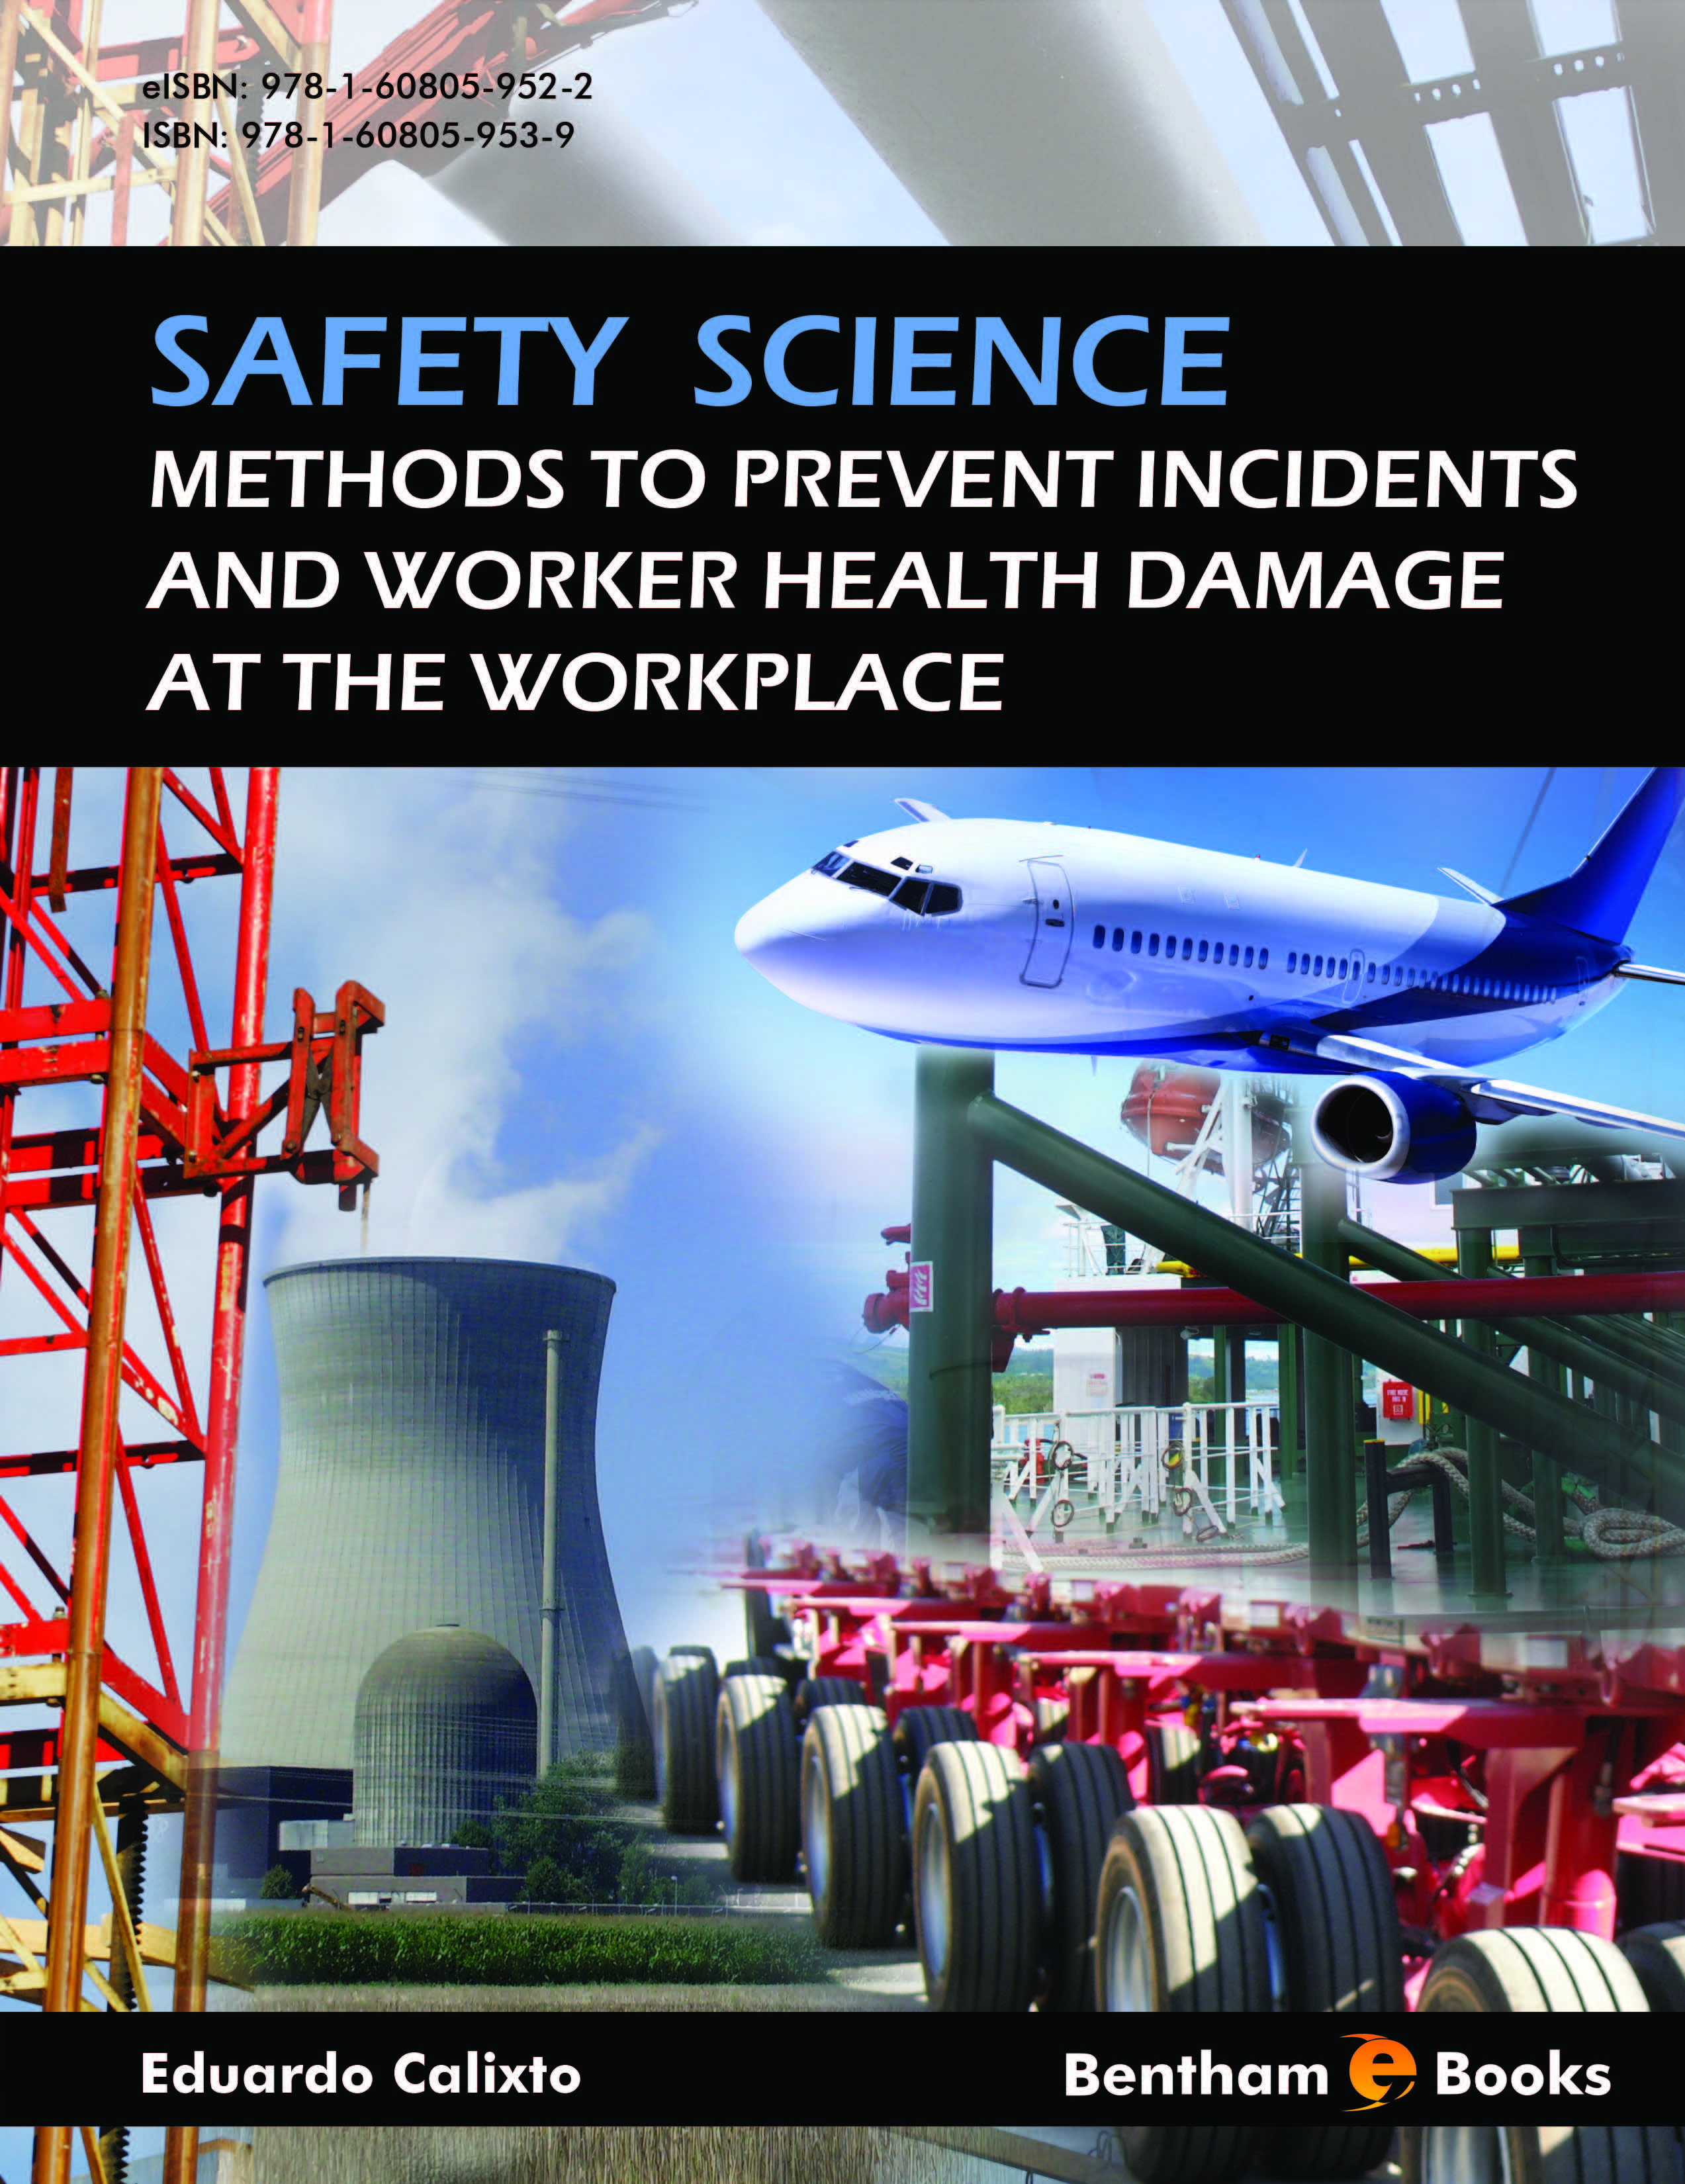 Safety Science: Methods to Prevent Incidents and Worker Health Damage at the Workplace